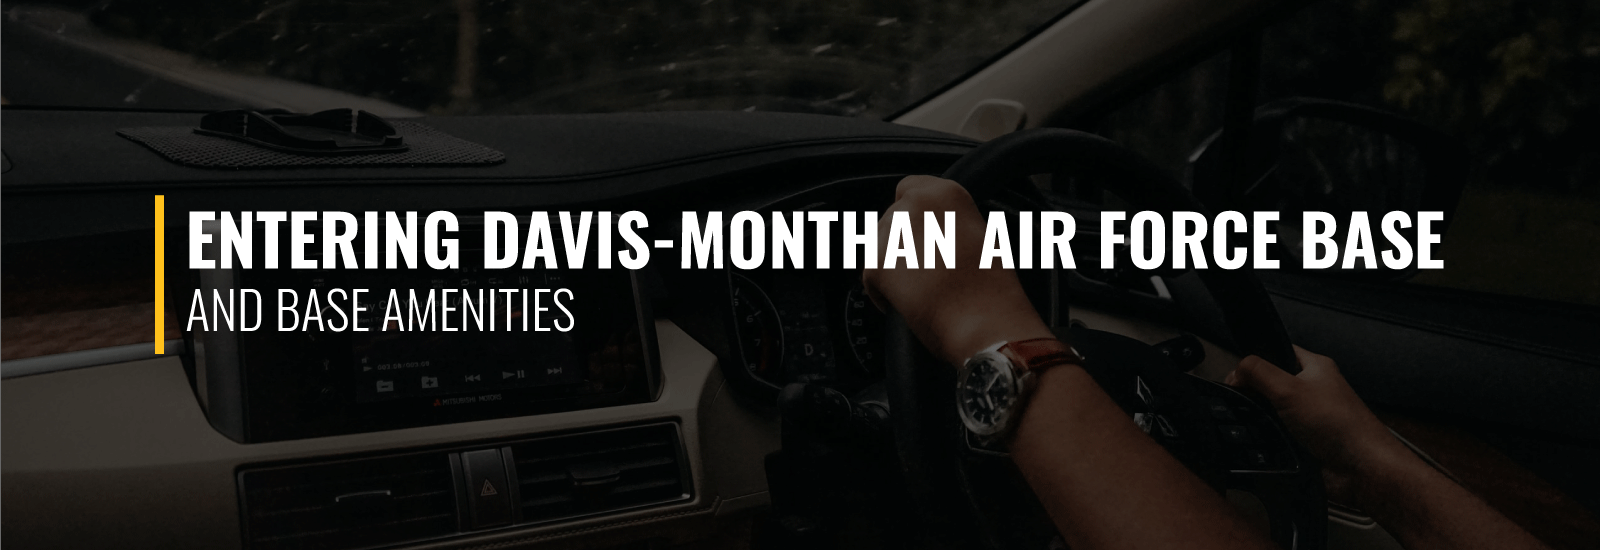 Entering Davis-Monthan AFB and Base Amenities